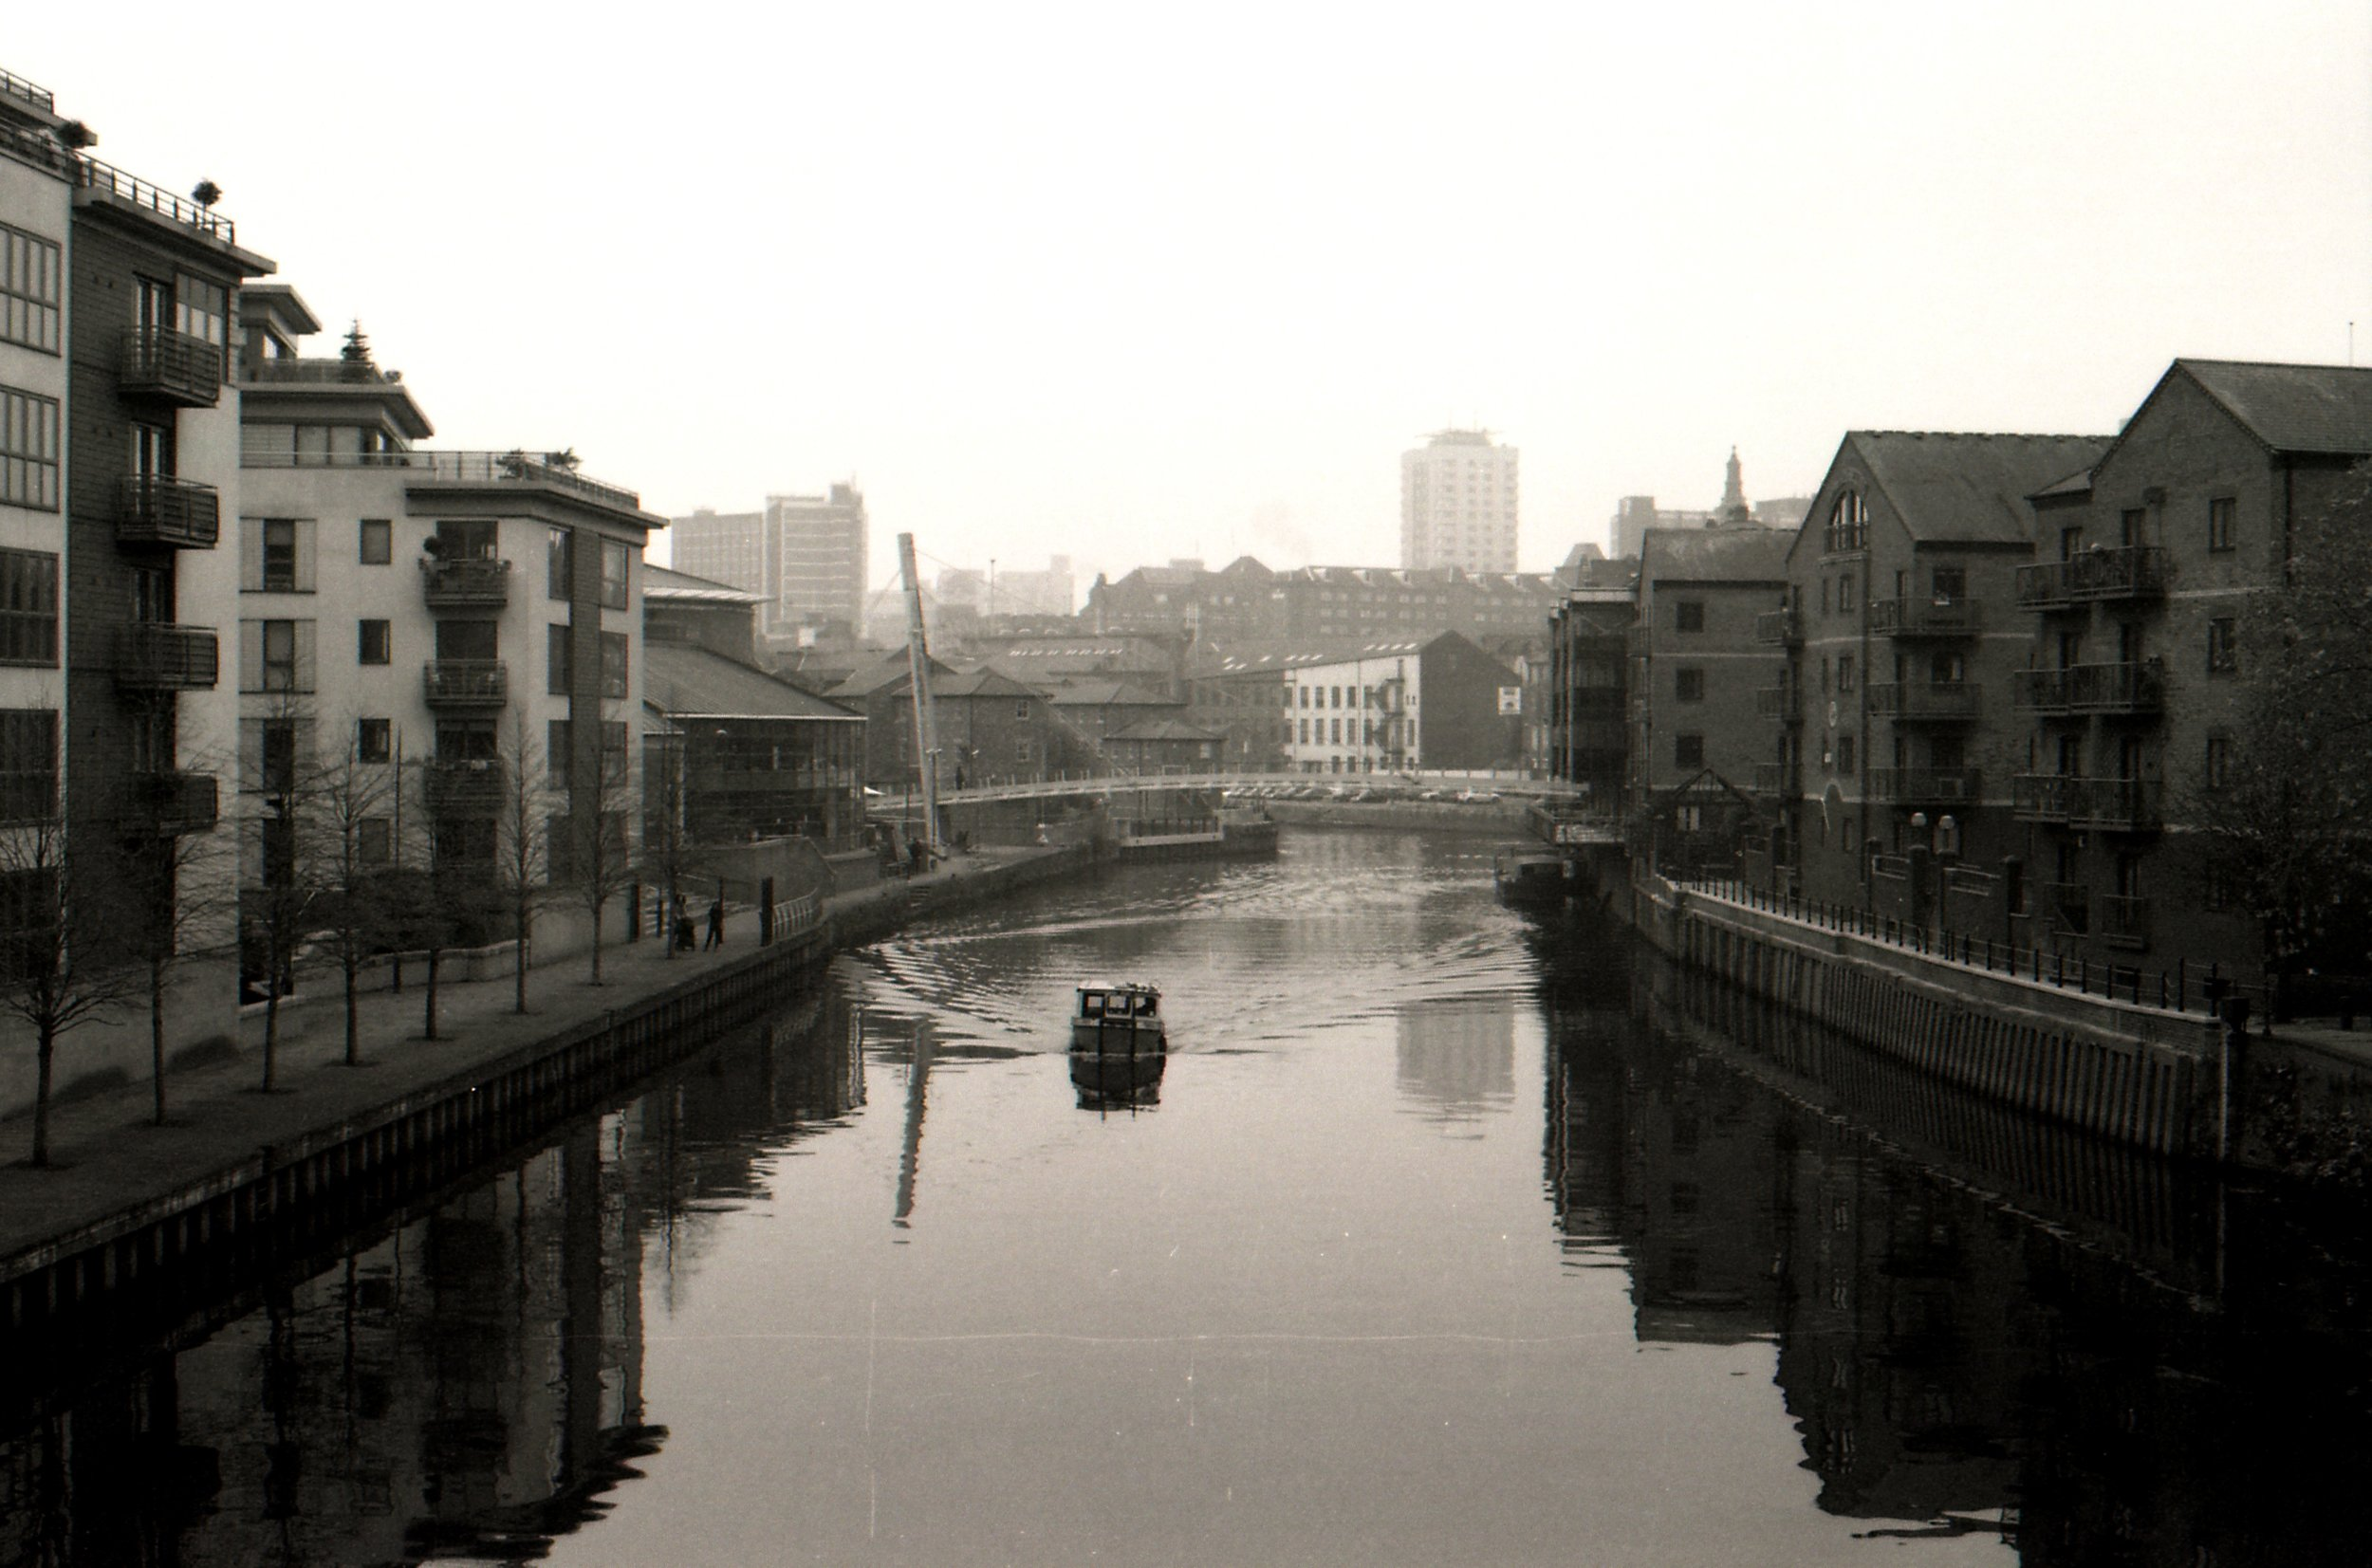 341/366/2016 - The free canal boat again but from a different angle. I love Leeds on a misty day.